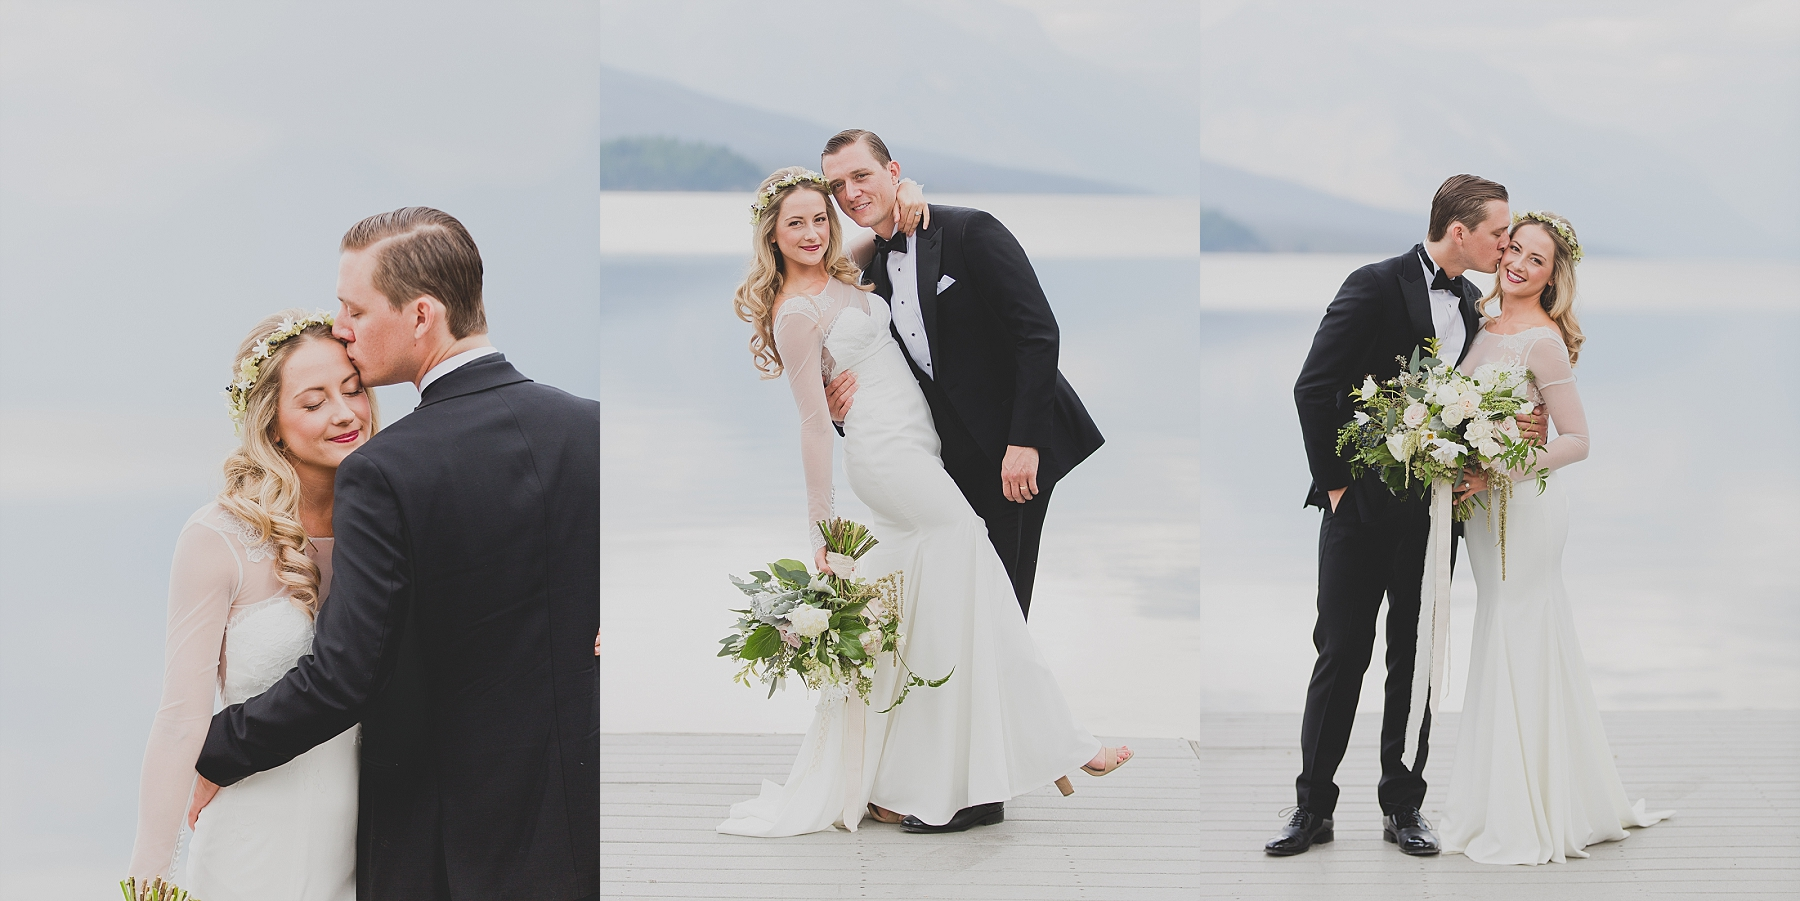 Jennifer_Mooney_Photo_glacier_park_wedding_Beargrass_florals_fall_wedding_elegant_montana_destination_velvet_bride_katie_may_dress_verona_gown_00019.jpg